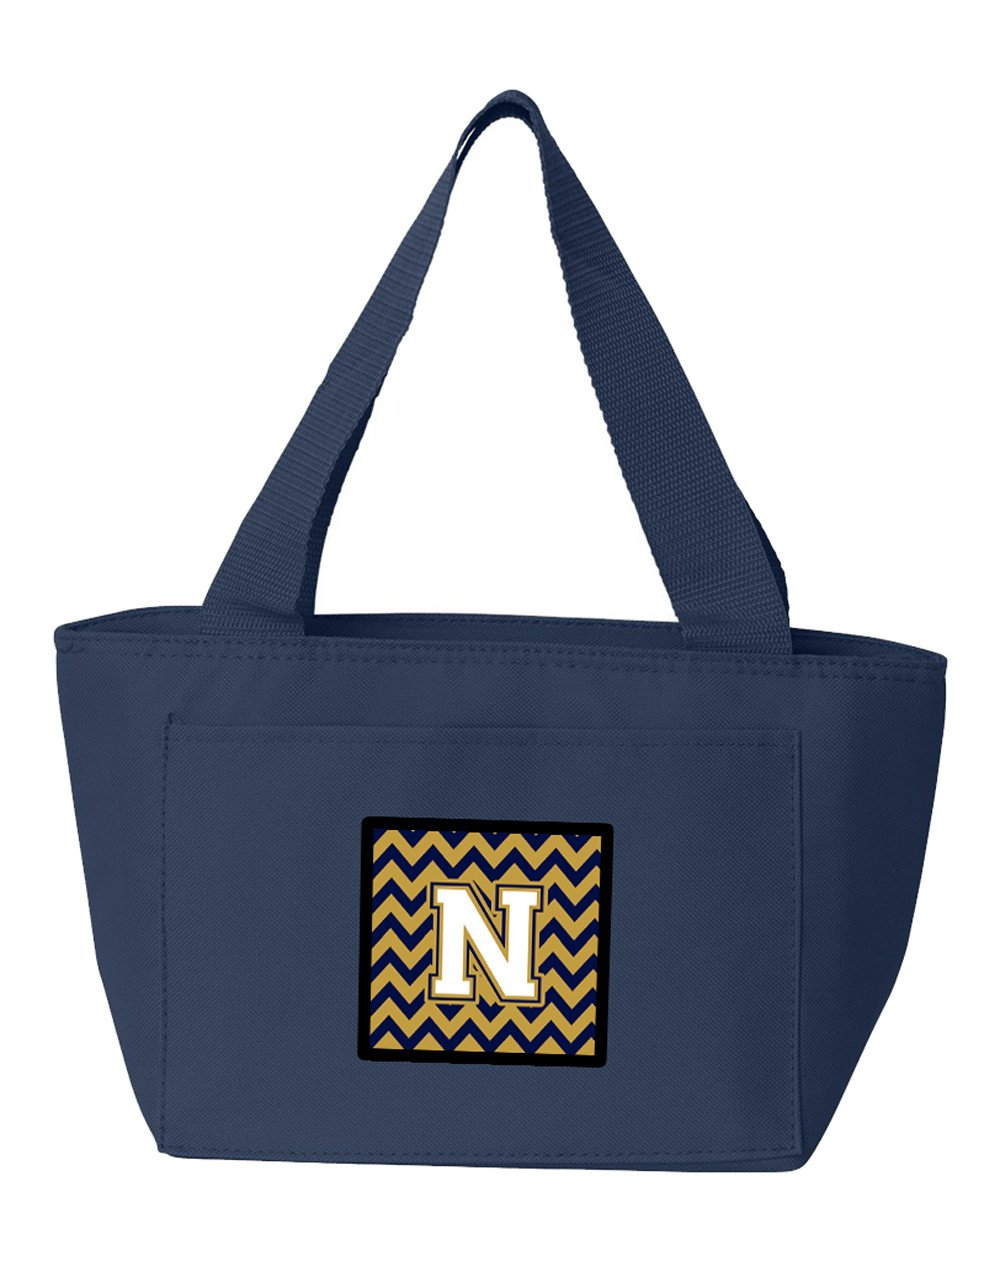 Letter N Chevron Navy Blue and Gold Lunch Bag CJ1057-NNA-8808 by Caroline's Treasures